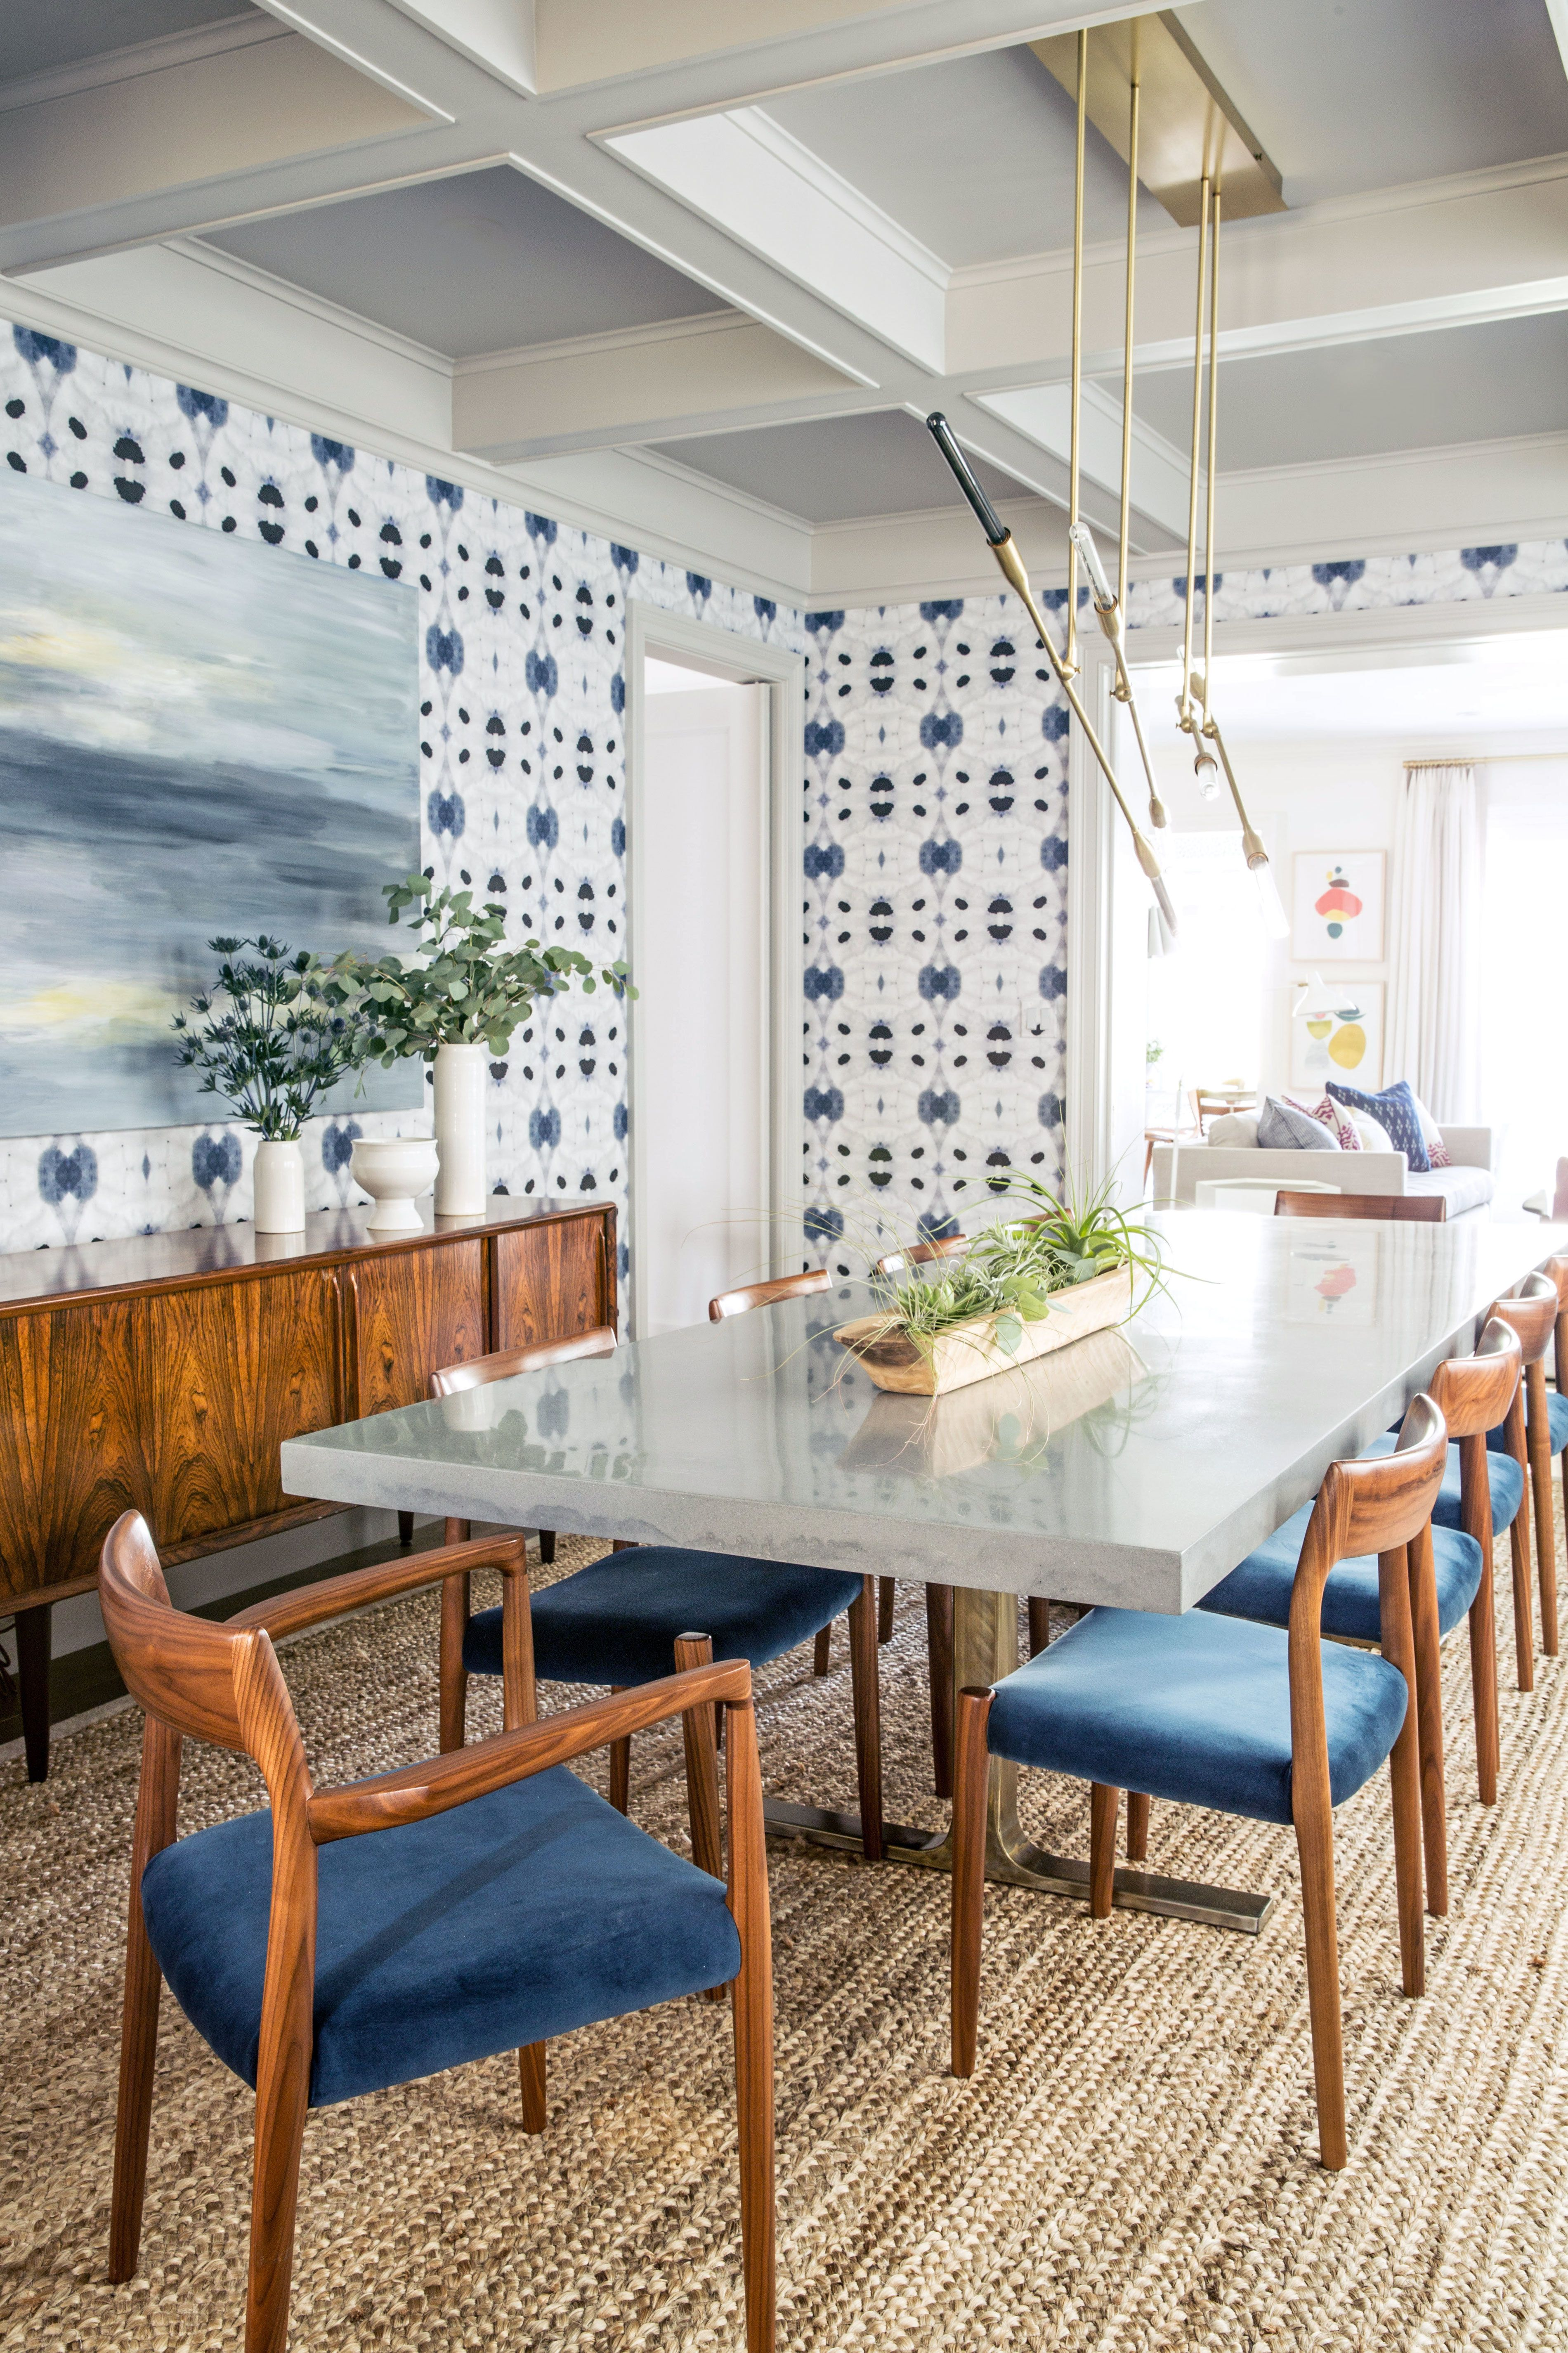 small inspiration pa pedestal with noble centerpieces design flower blue set as ideas interior rounded over well paint table modern chandelier shade color dining awful room photos chairs chair